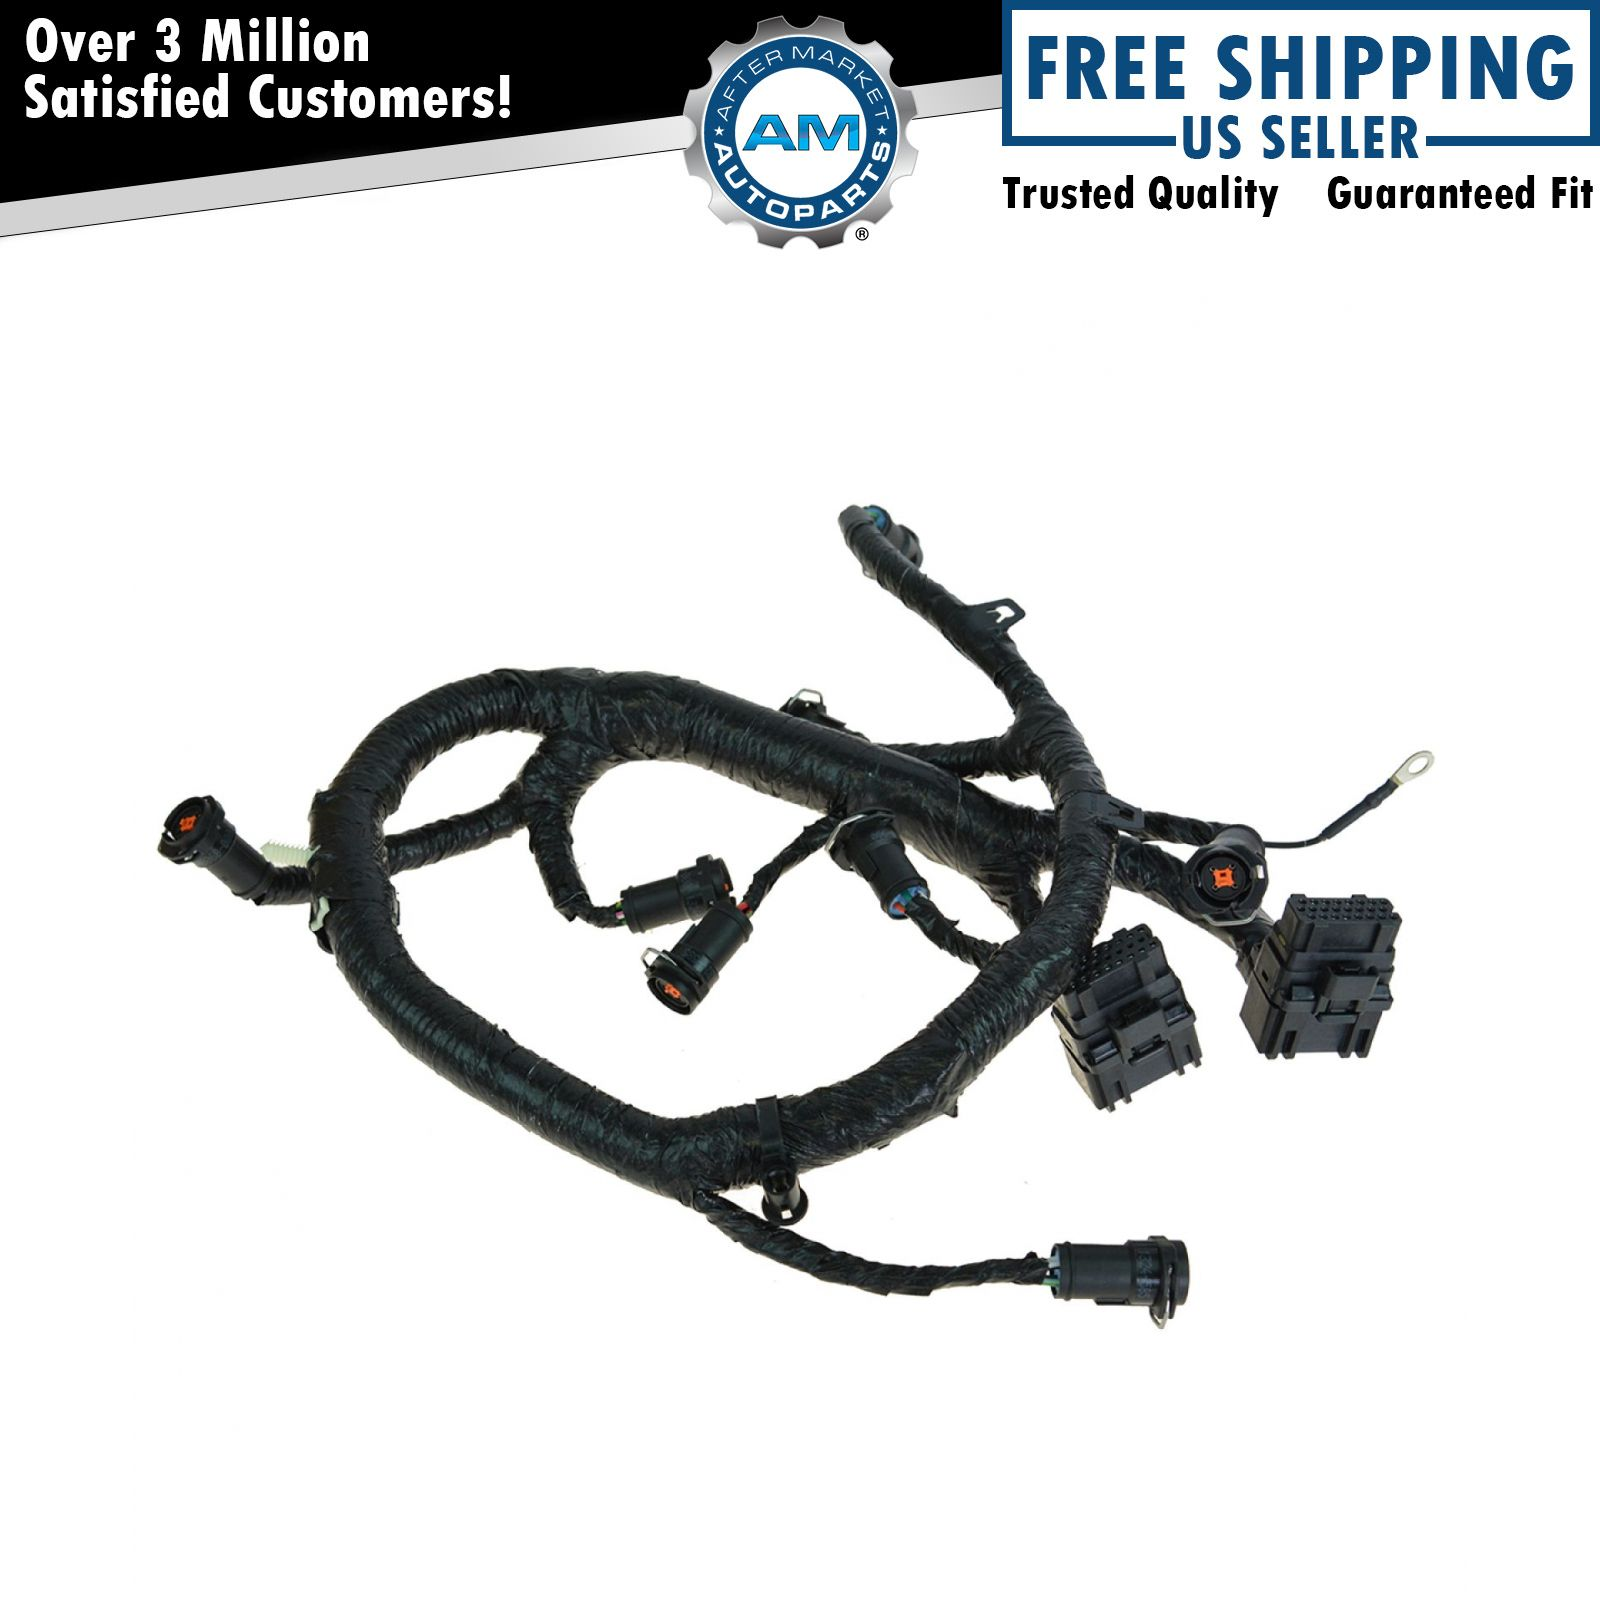 Ford Diesel Wiring Harness Diagrams 3000 Oem Fuel Injector For 05 07 2000 F350 73 Engine